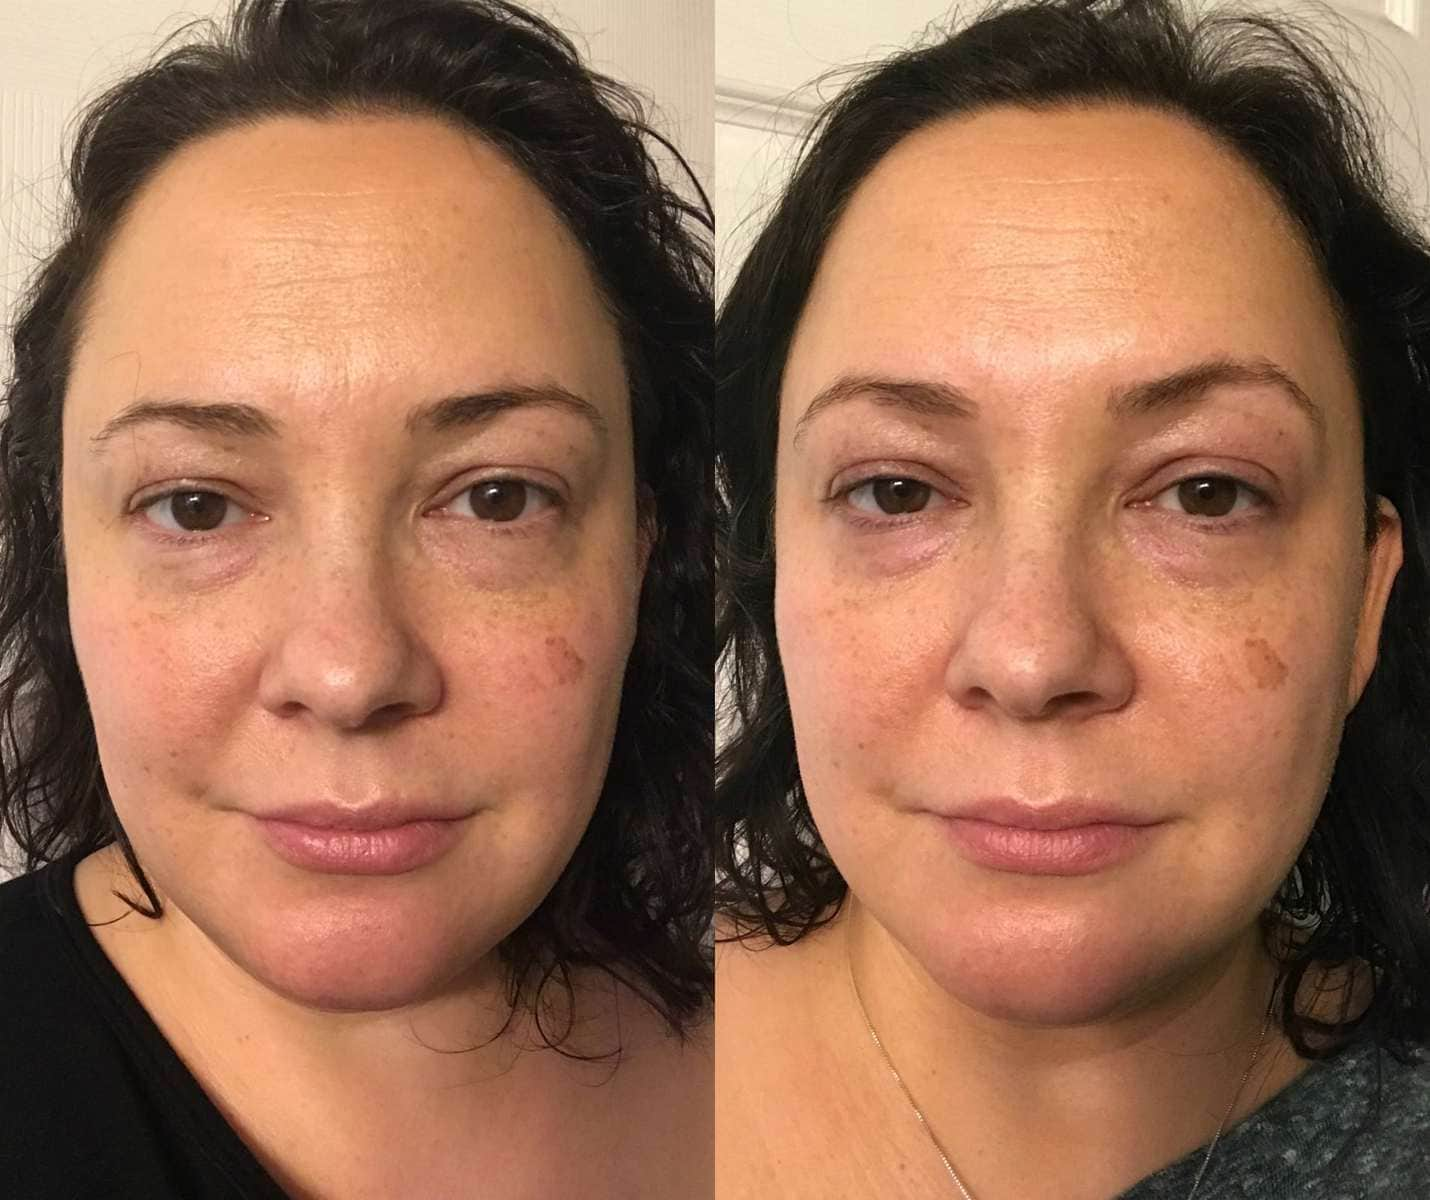 Neutrogena Rapid Wrinkle Repair Regenerating Cream review - before and after one week by Wardrobe Oxygen